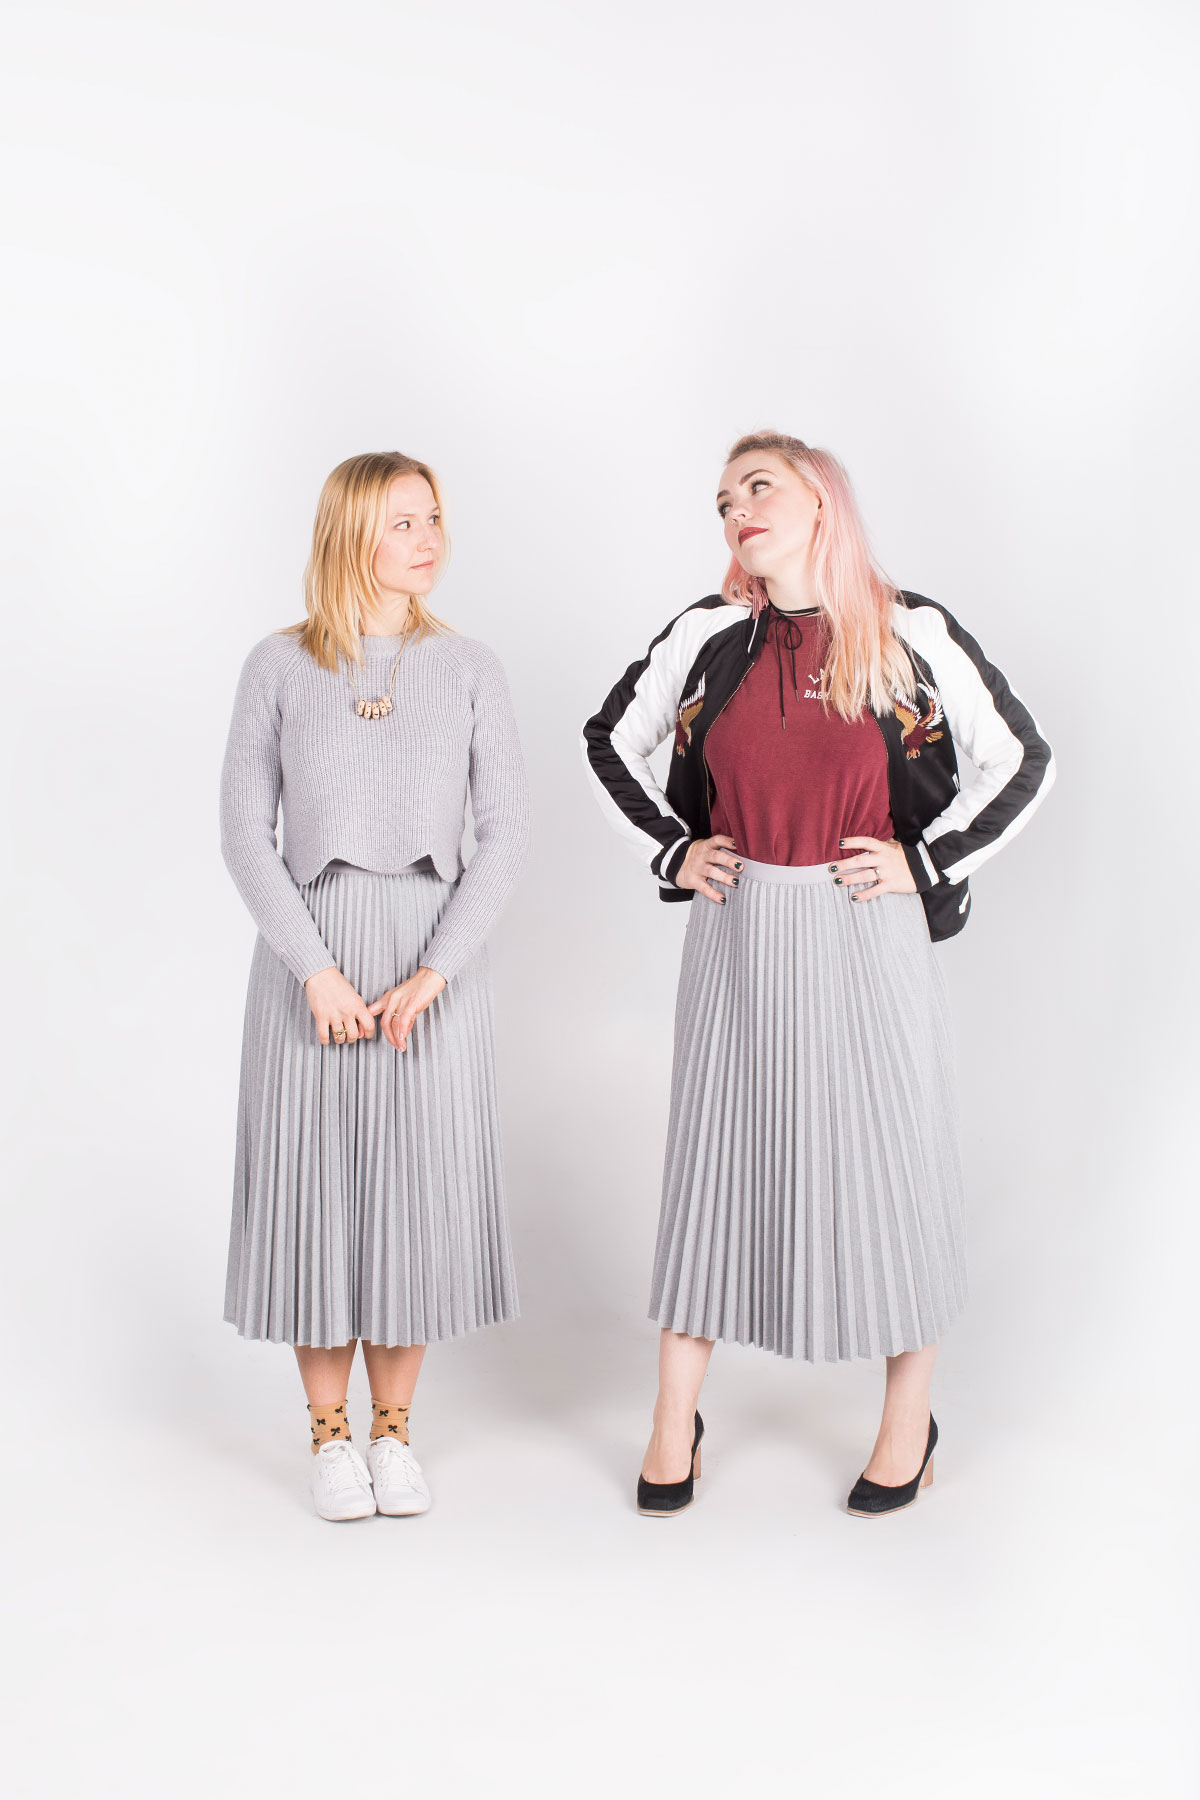 05bdabcaec Shopping Guide: Aritiza Grey Knife Pleat Skirt. On Anne: Aritzia Grey  Cropped Sweater with Scallop Hem. The Wilde Bloem Clay Beaded Necklace.